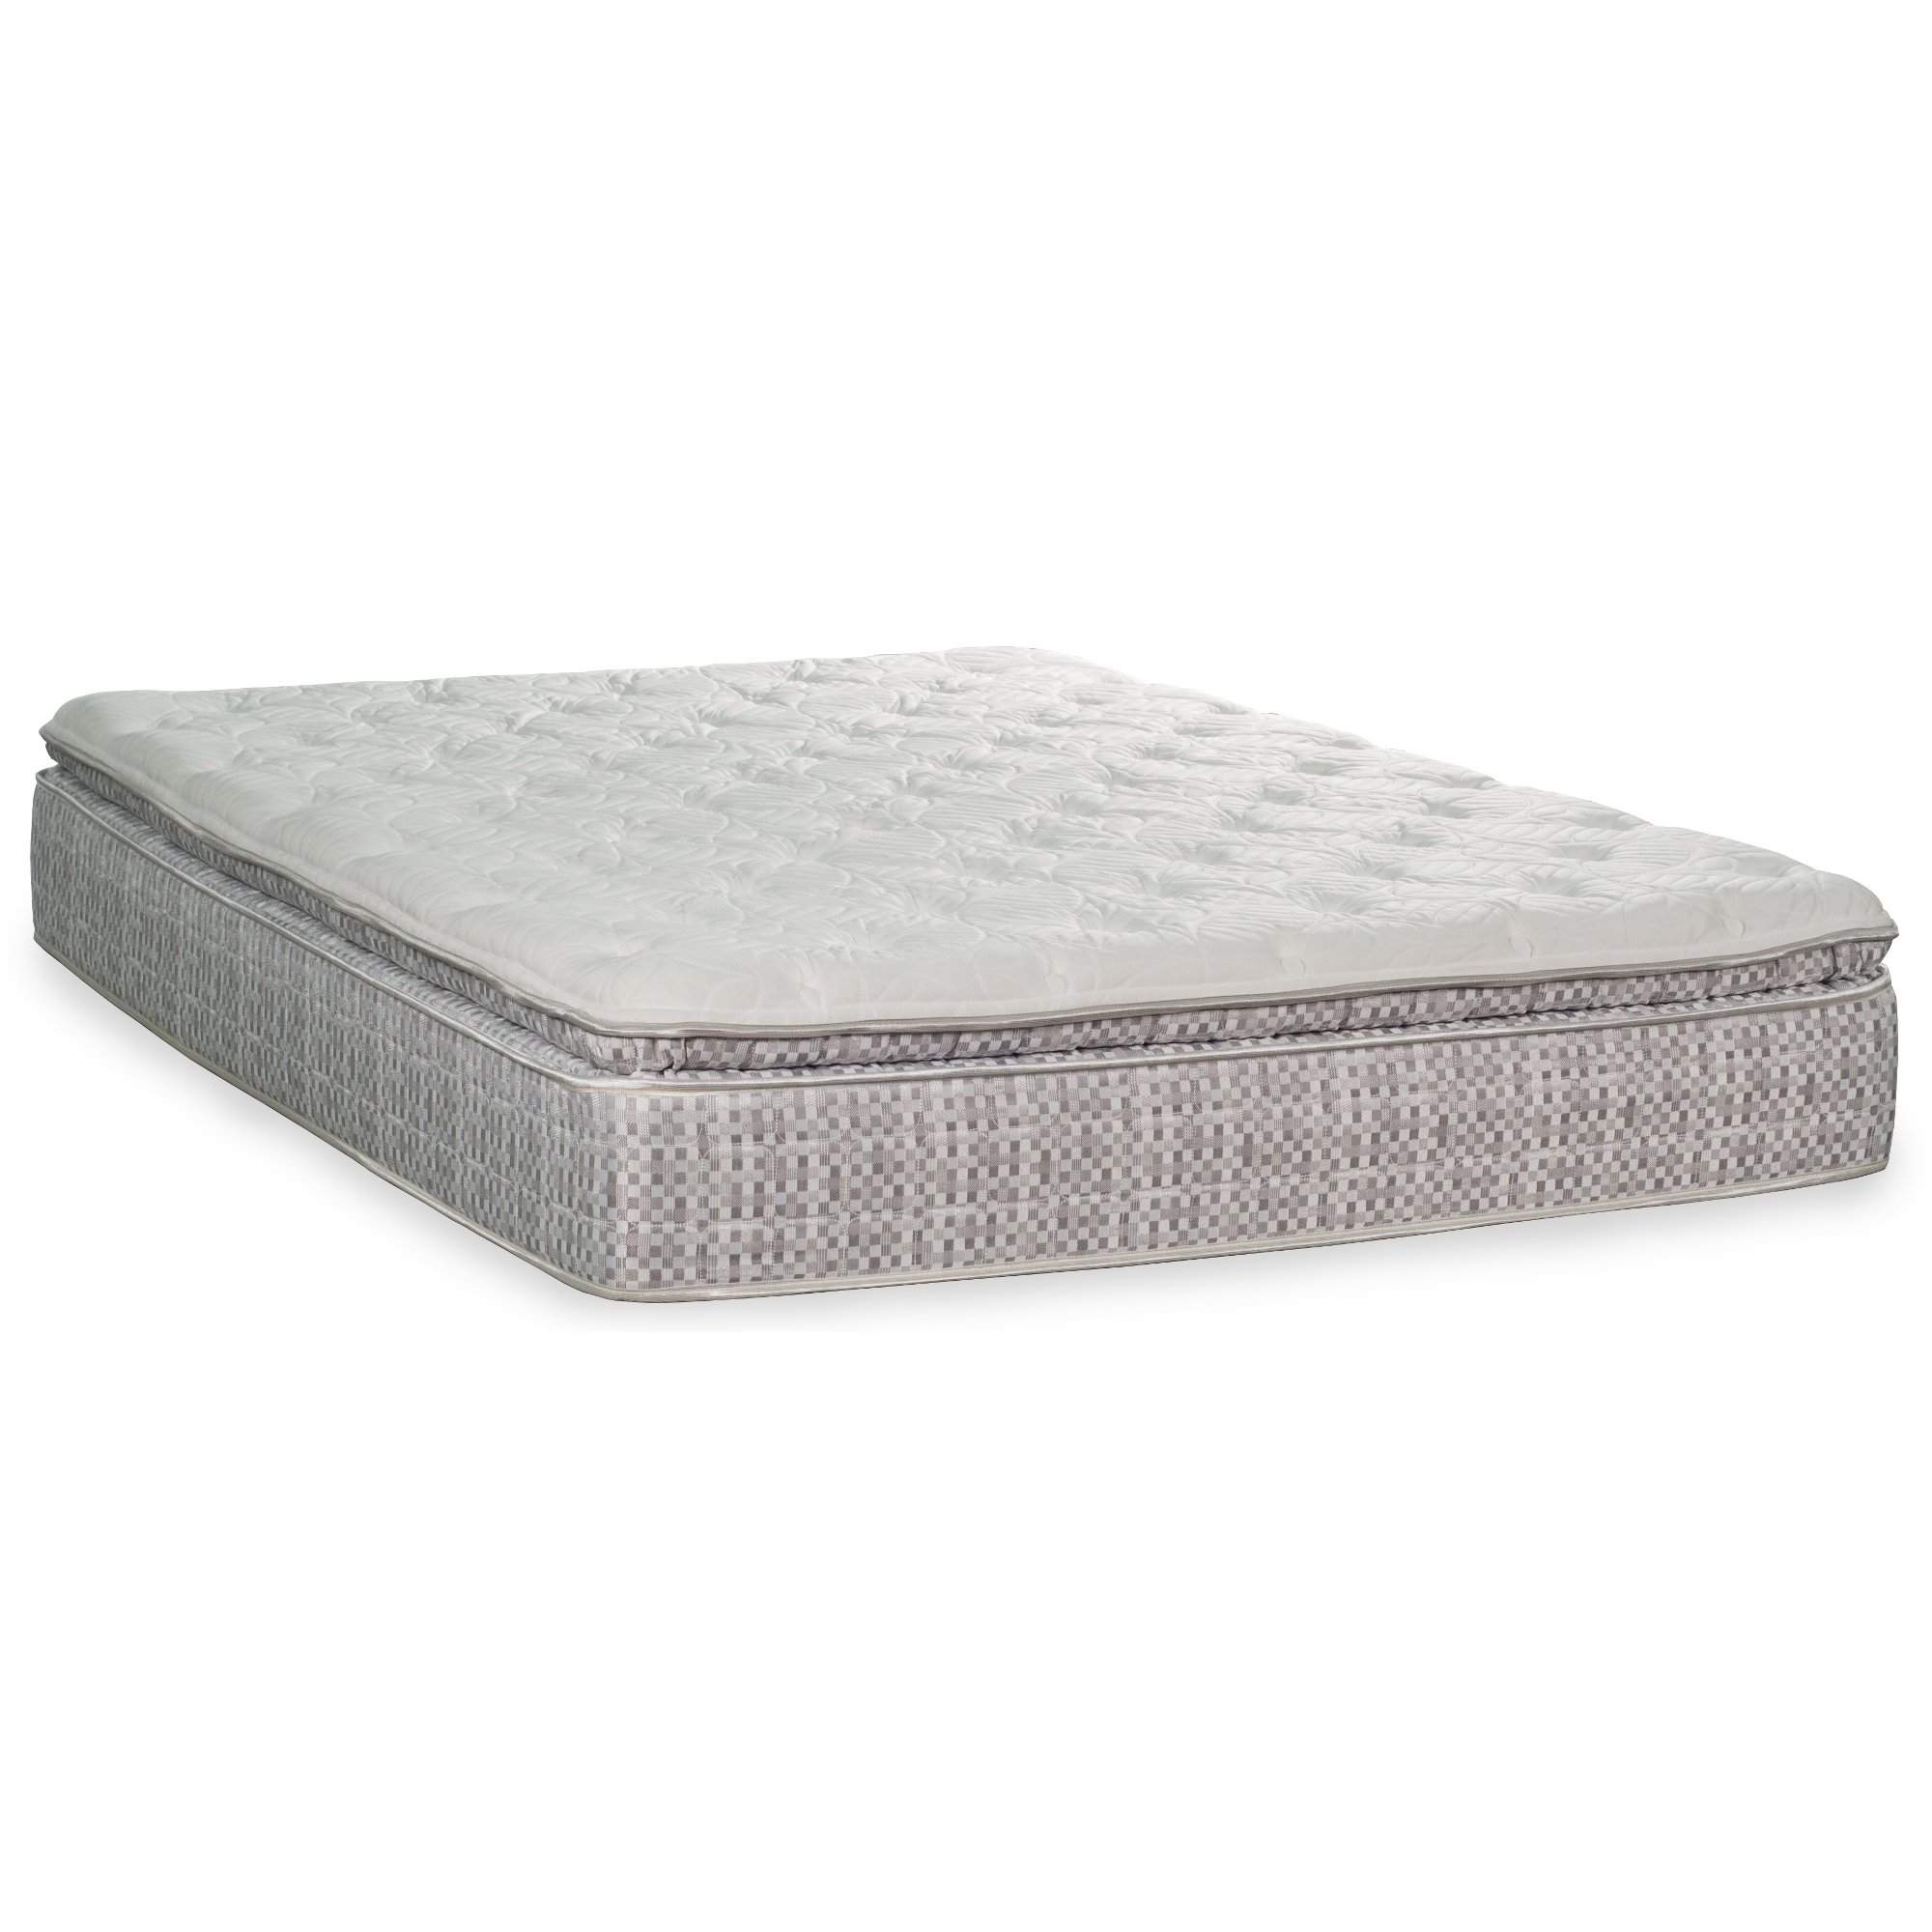 com walmart serta top mattress pillow foam topper memory queen ip and pad